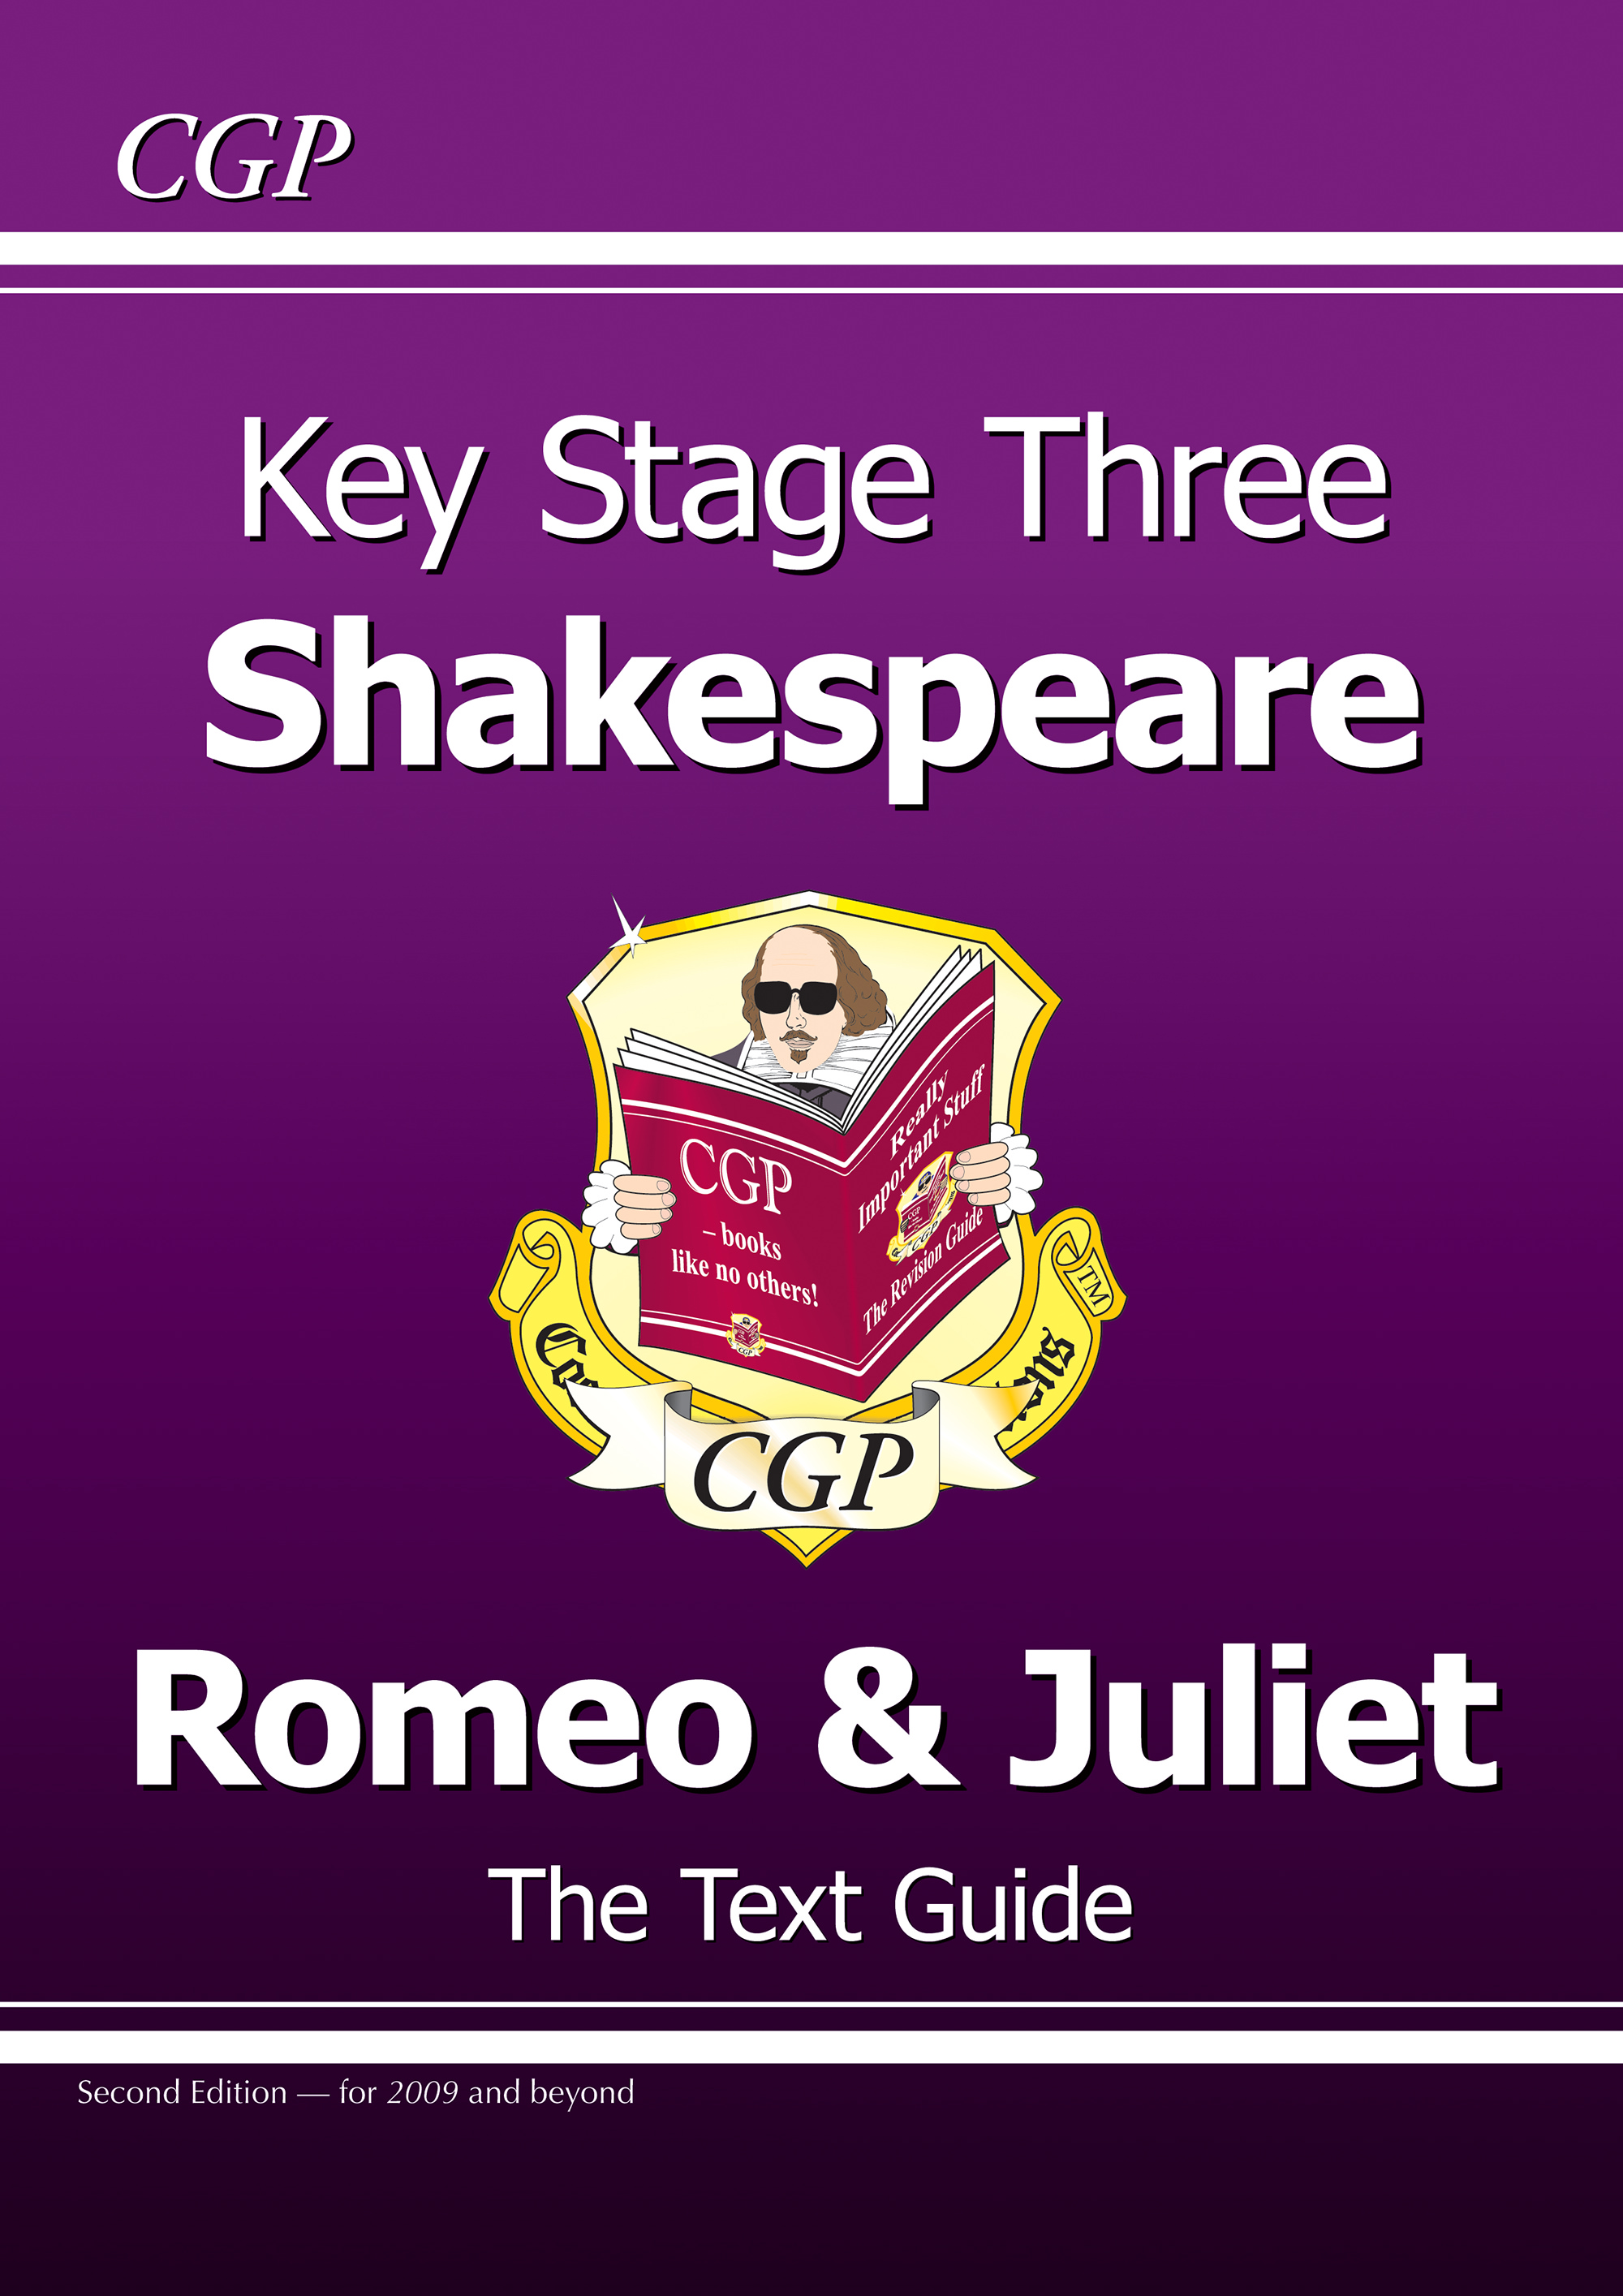 ESR31 - KS3 English Shakespeare Text Guide - Romeo & Juliet